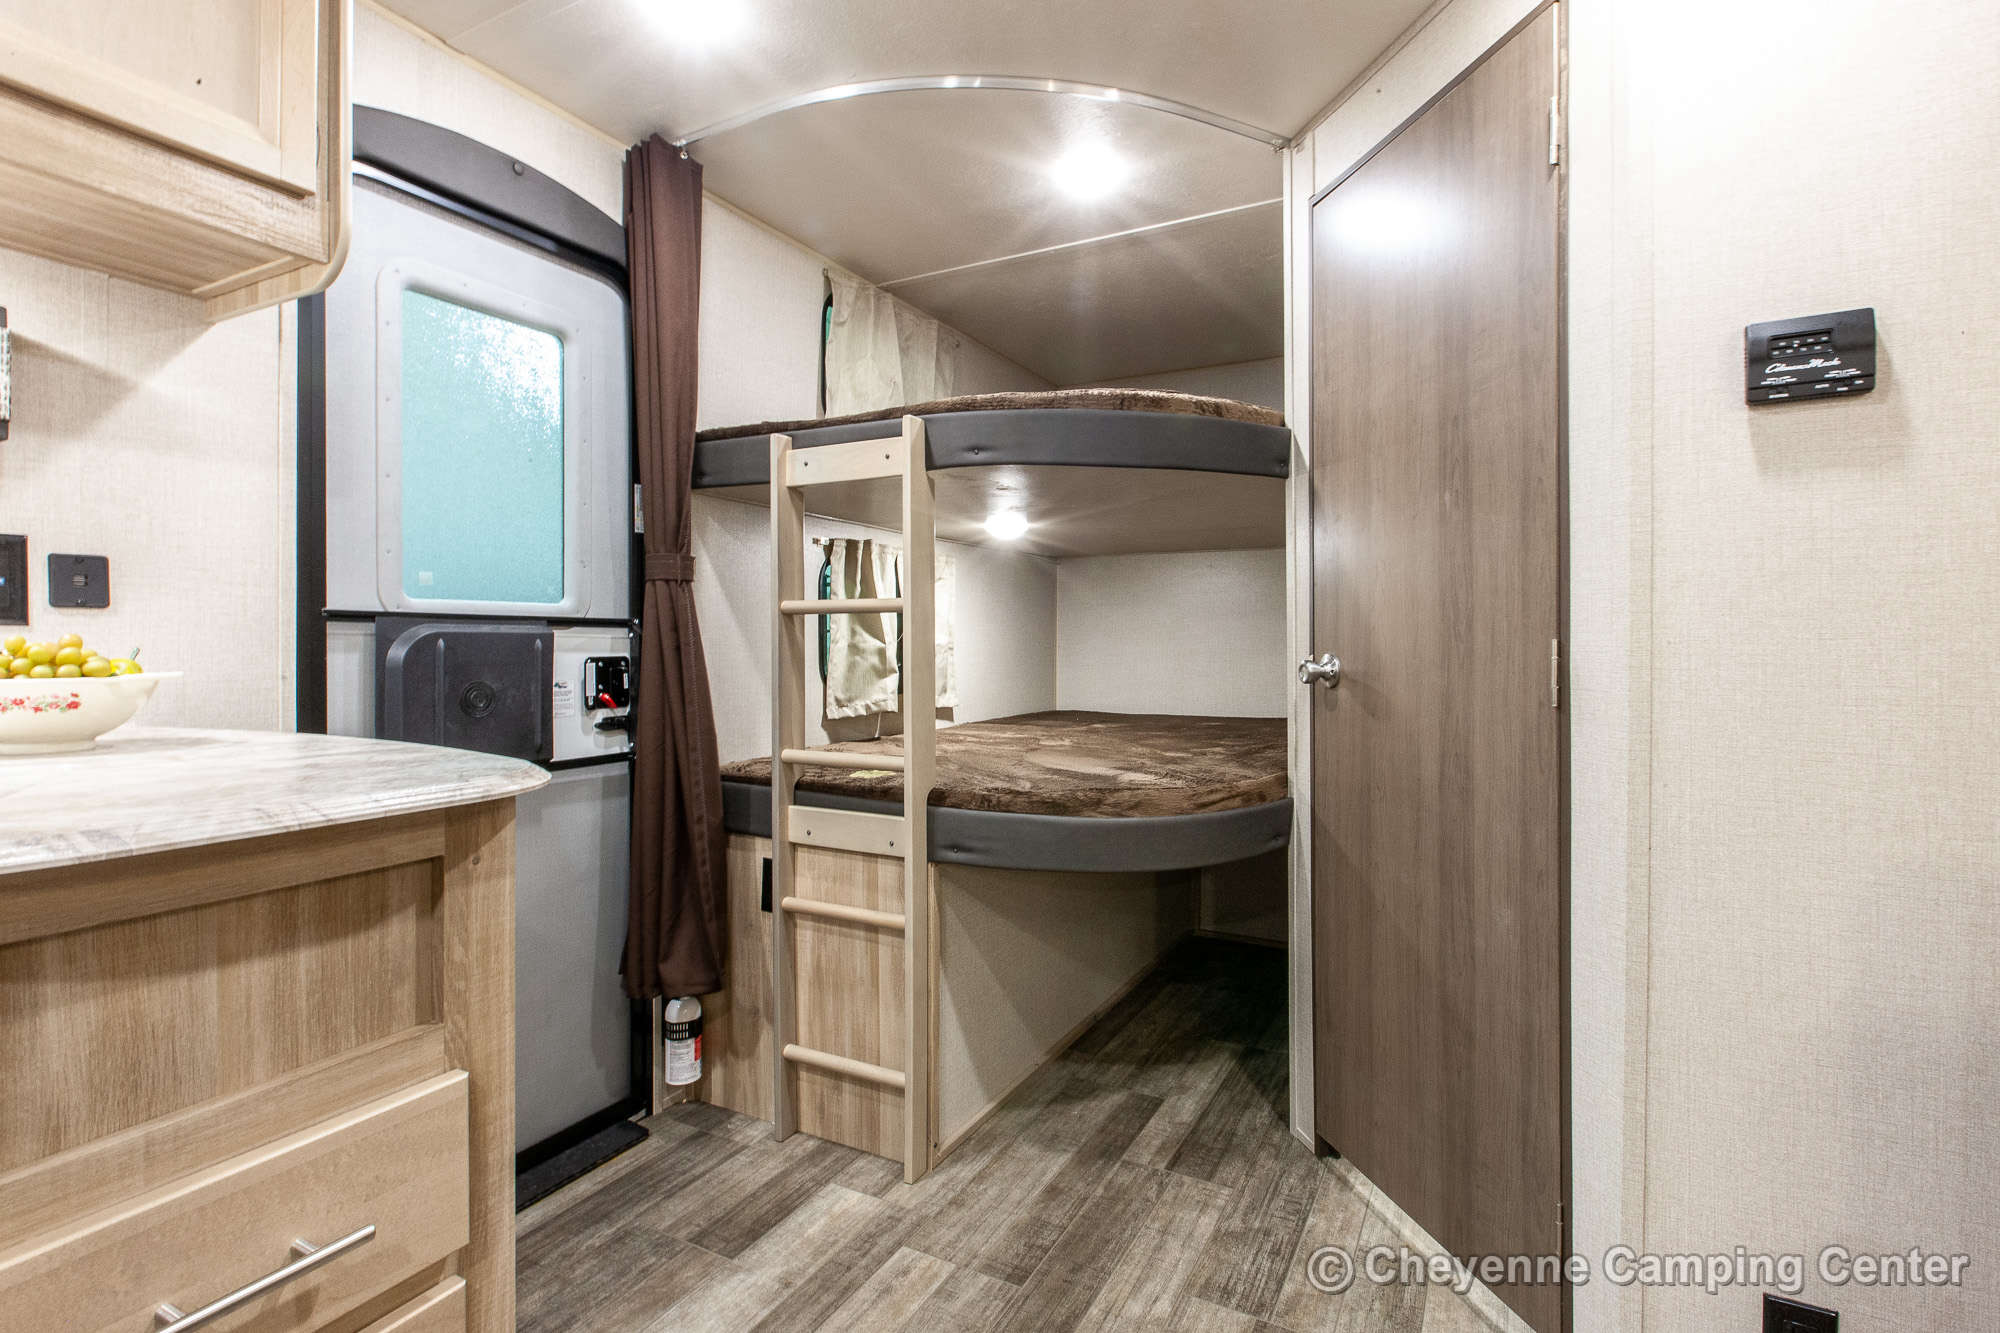 2021 Coachmen Catalina Legacy Edition 263BHSCK Bunkhouse Travel Trailer Interior Image